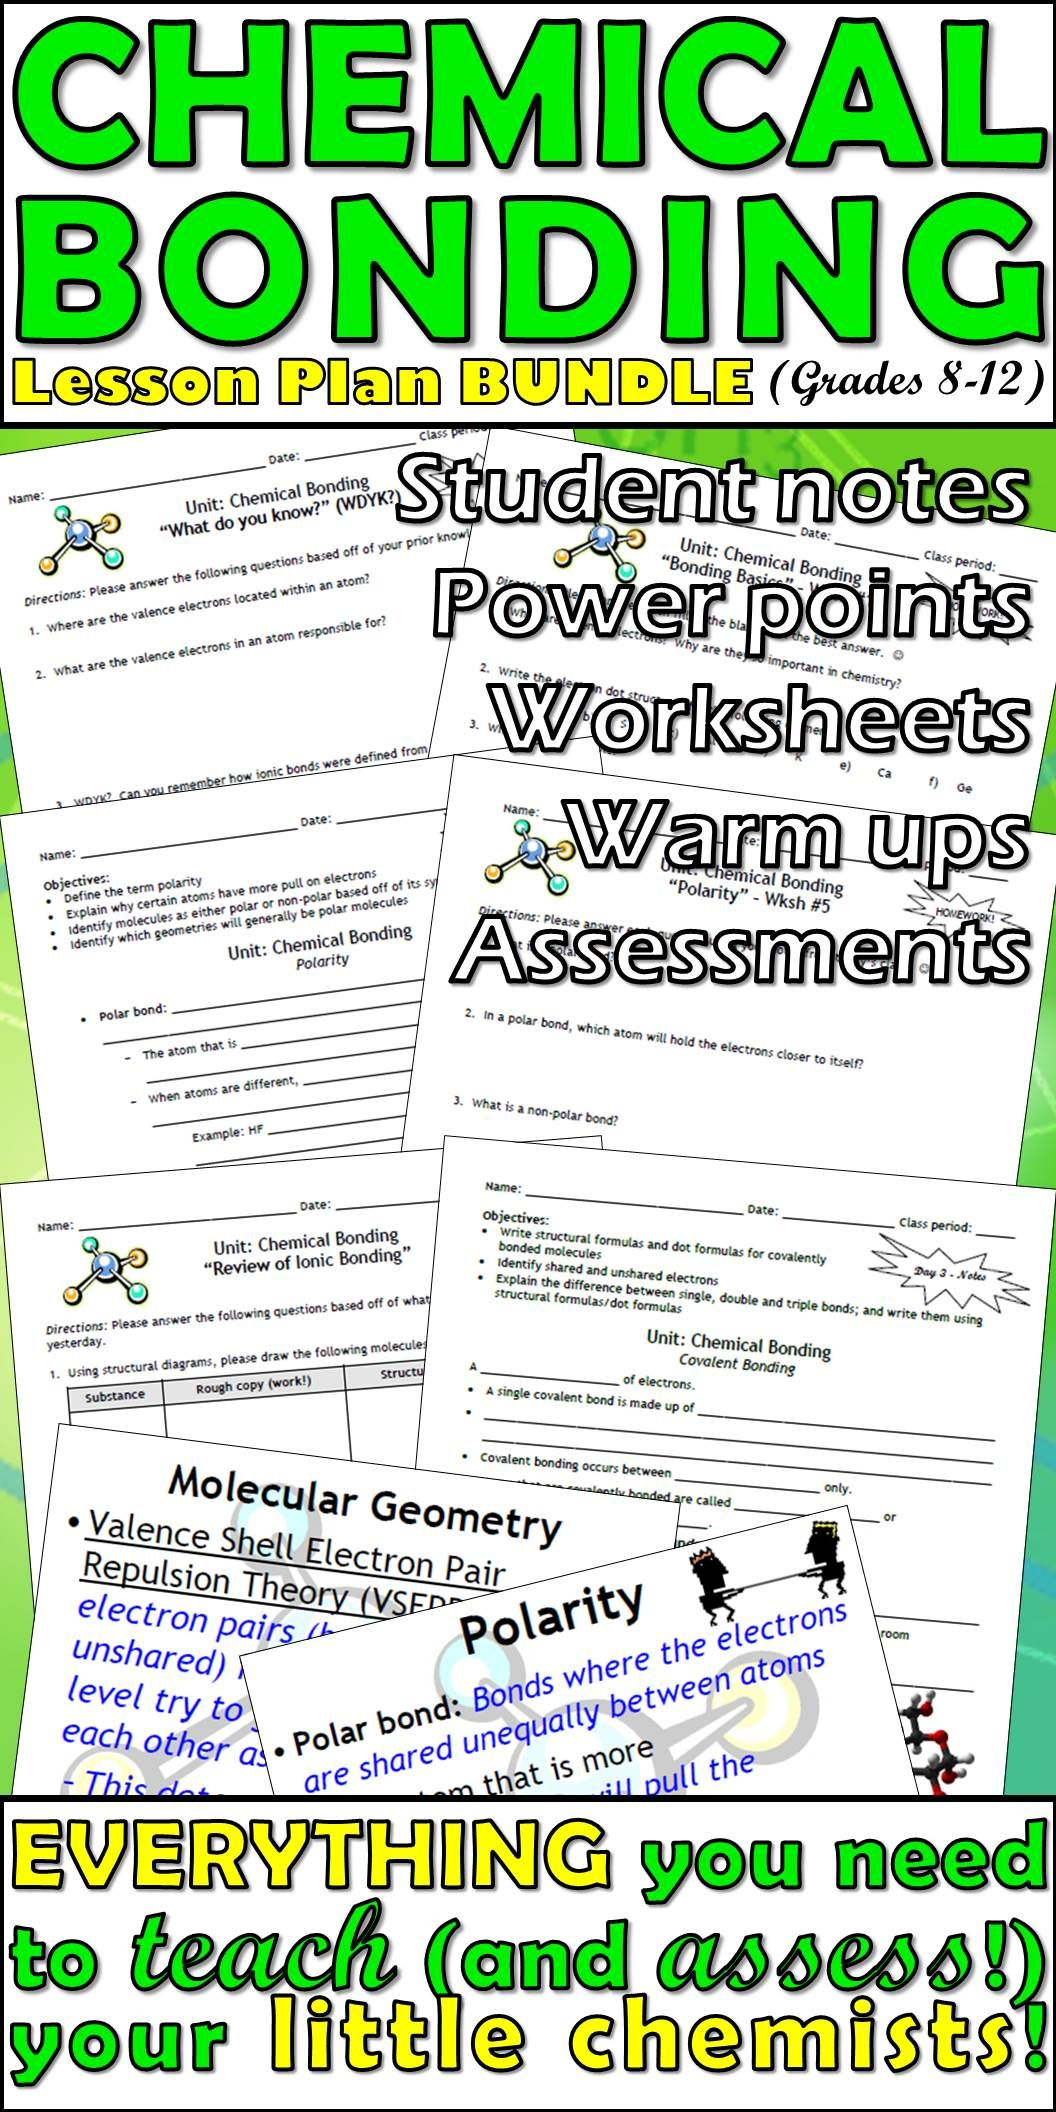 A Perfect Ionic And Covalent Bonding Lesson Plan Bundle Teaches About Lewis Structures Electron Dot Covalent Bonding Chemistry Worksheets Teaching Chemistry [ 2112 x 1056 Pixel ]